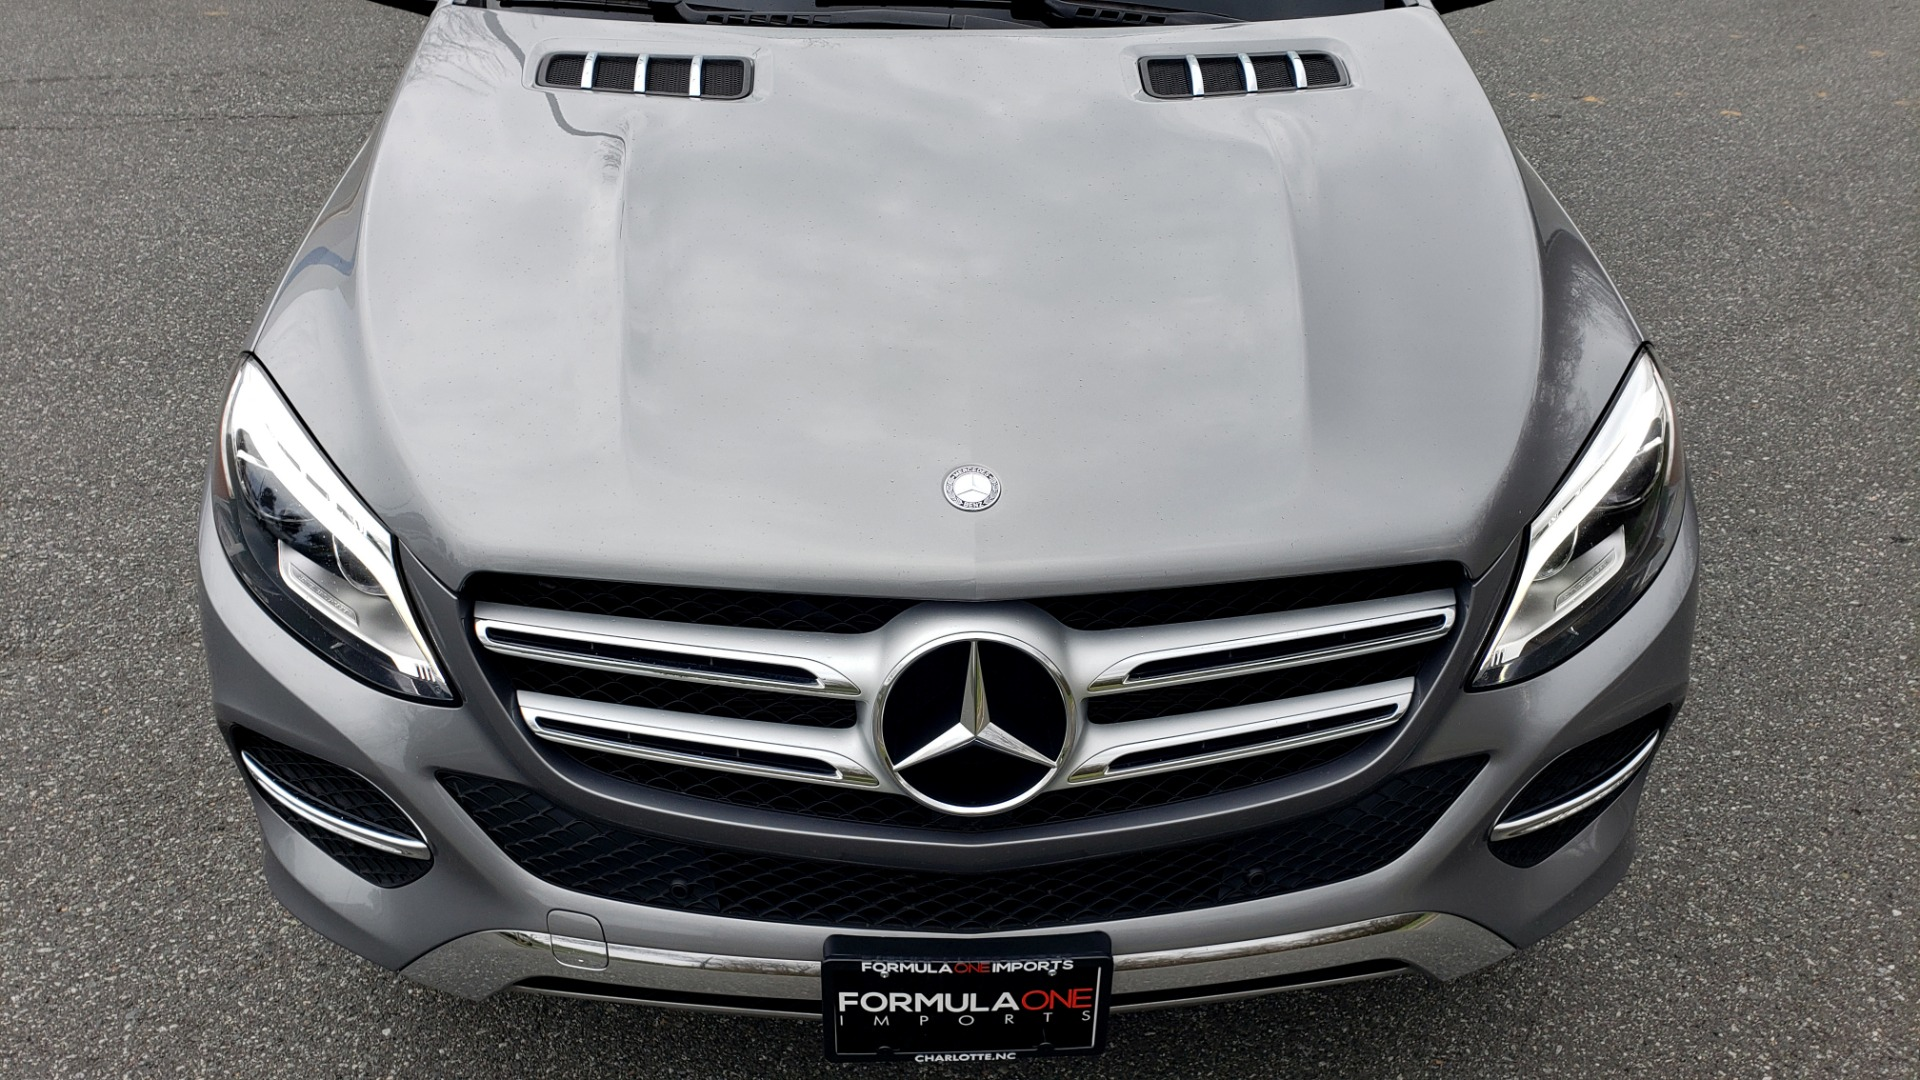 Used 2016 Mercedes-Benz GLE 350 4MATIC / PREMIUM / LIGHTING / NAV / SUNROOF / HTD STS / REAR for sale Sold at Formula Imports in Charlotte NC 28227 15